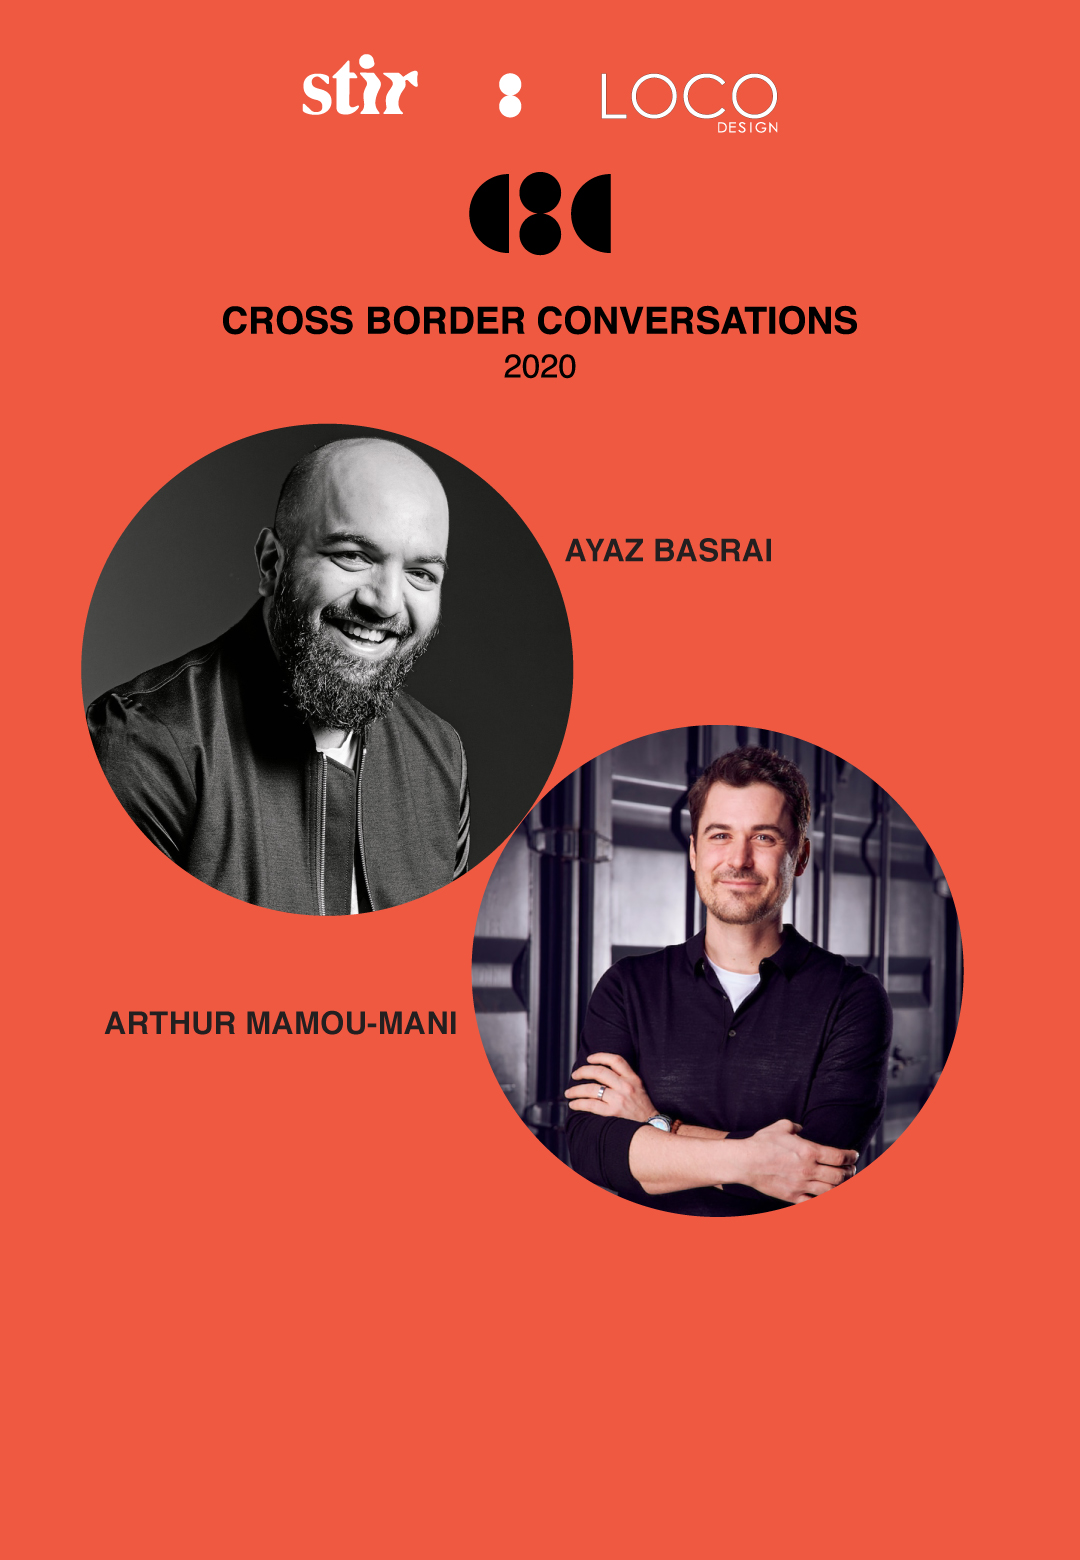 Arthur Mamou-Mani X Ayaz Basrai: Cross Border ConversationsCross Border Conversations: Arthur Mamou-Mani X Ayaz Basrai | Temple Run into the Future | STIR X LOCO Design